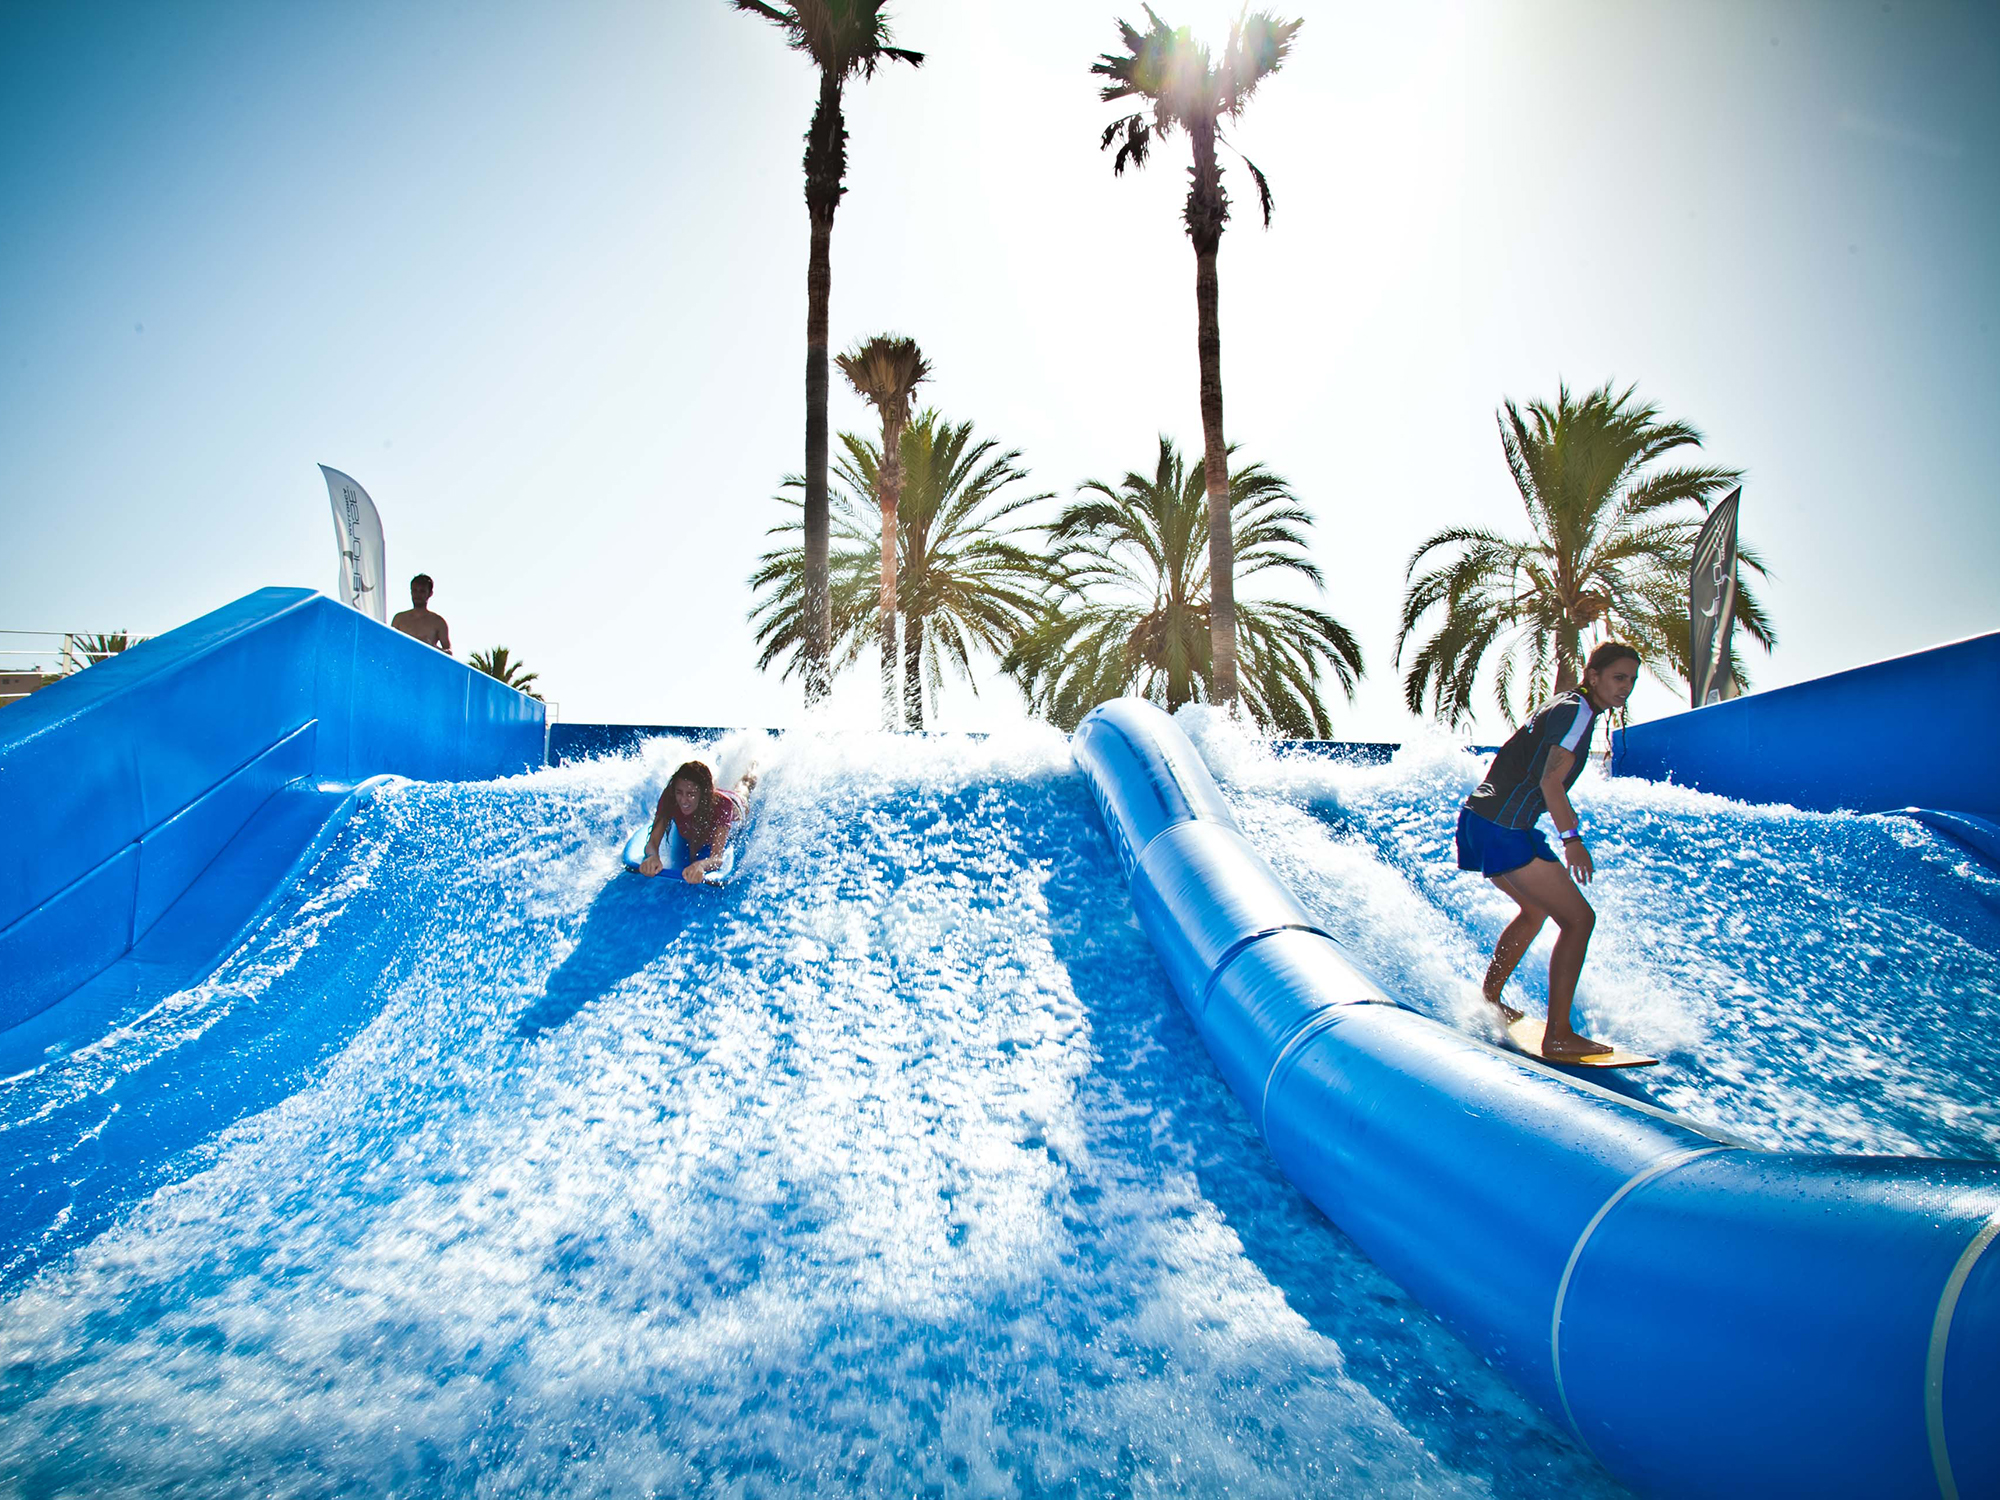 Programming your flowrider surf attraction